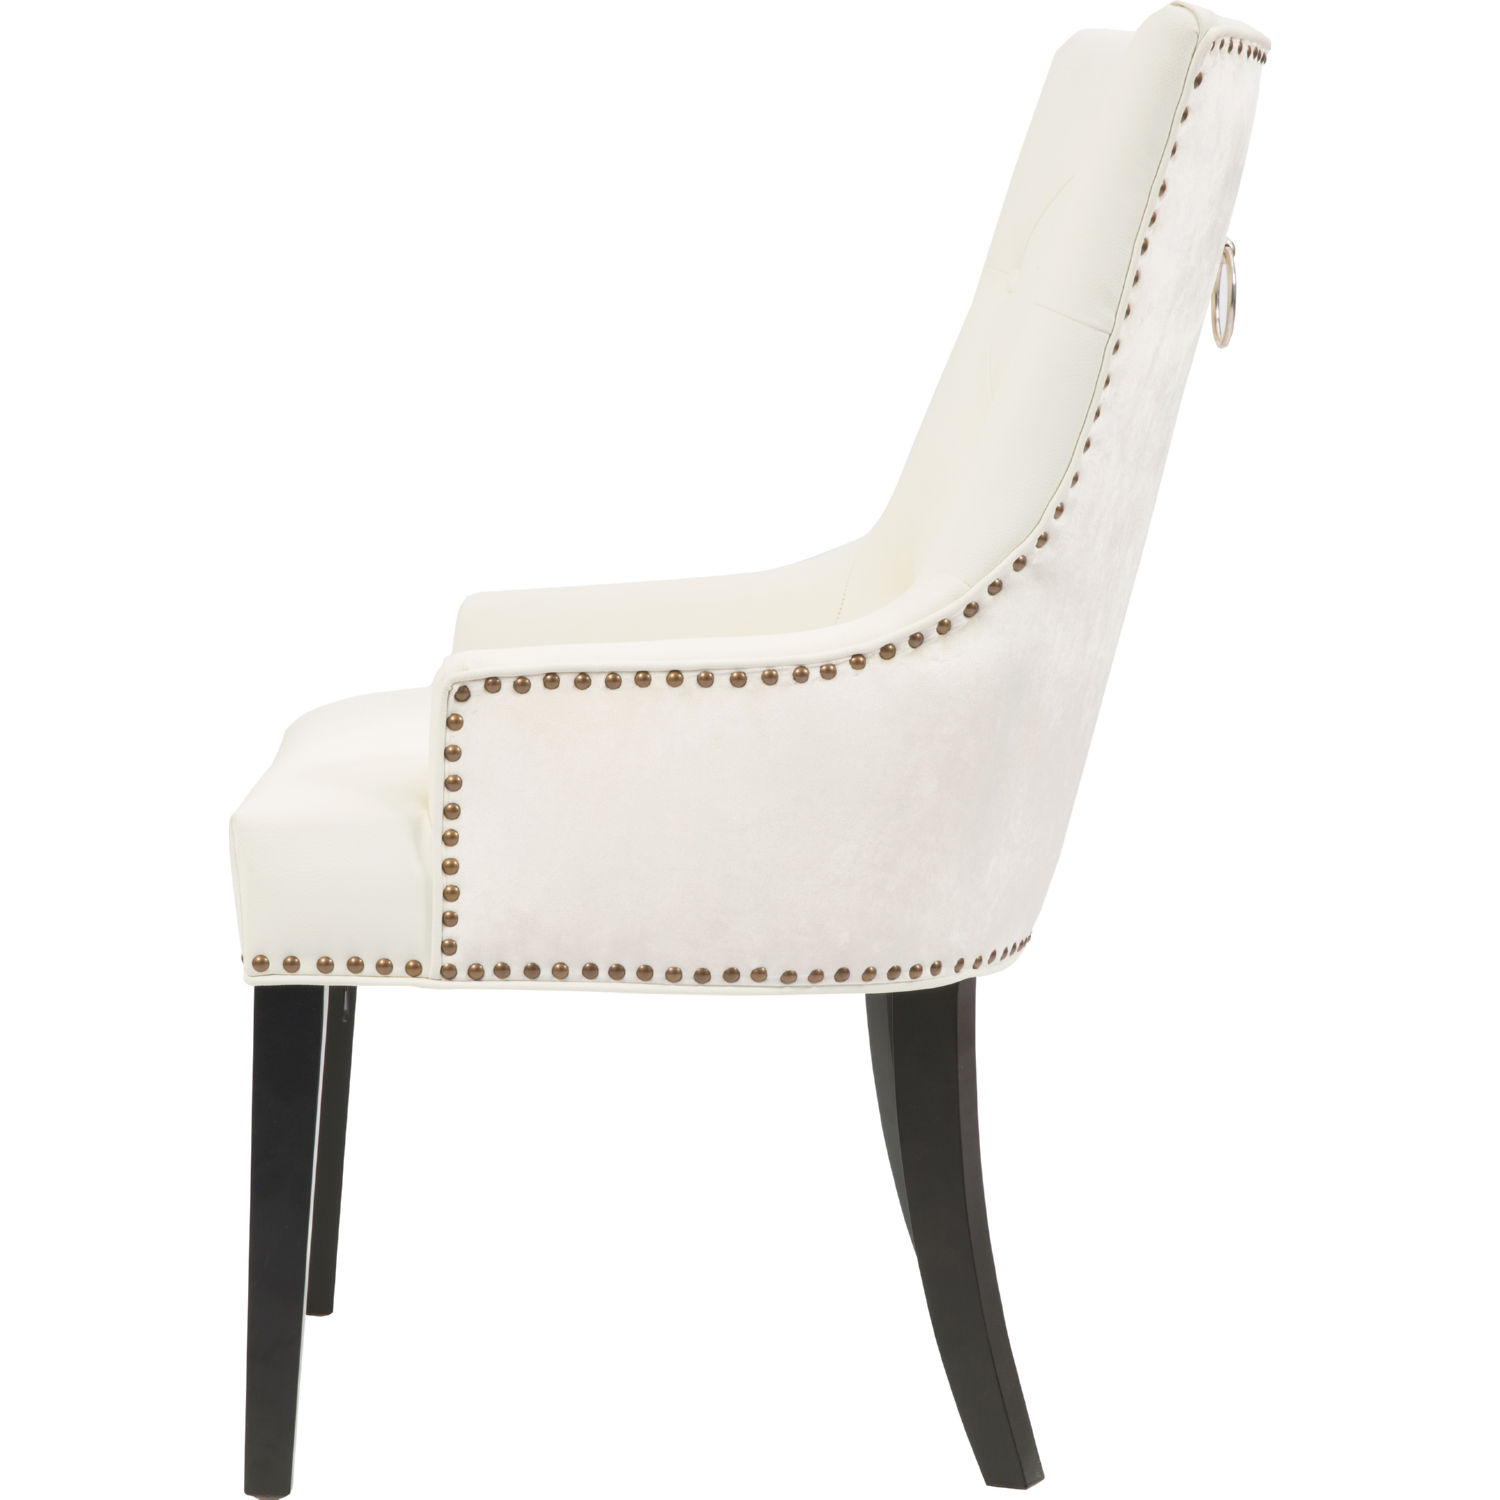 Brilliant Cadence Dining Chair In Tufted White Leatherette Velvet W Brass Nailhead Pull Set Of 2 By Chic Home Caraccident5 Cool Chair Designs And Ideas Caraccident5Info